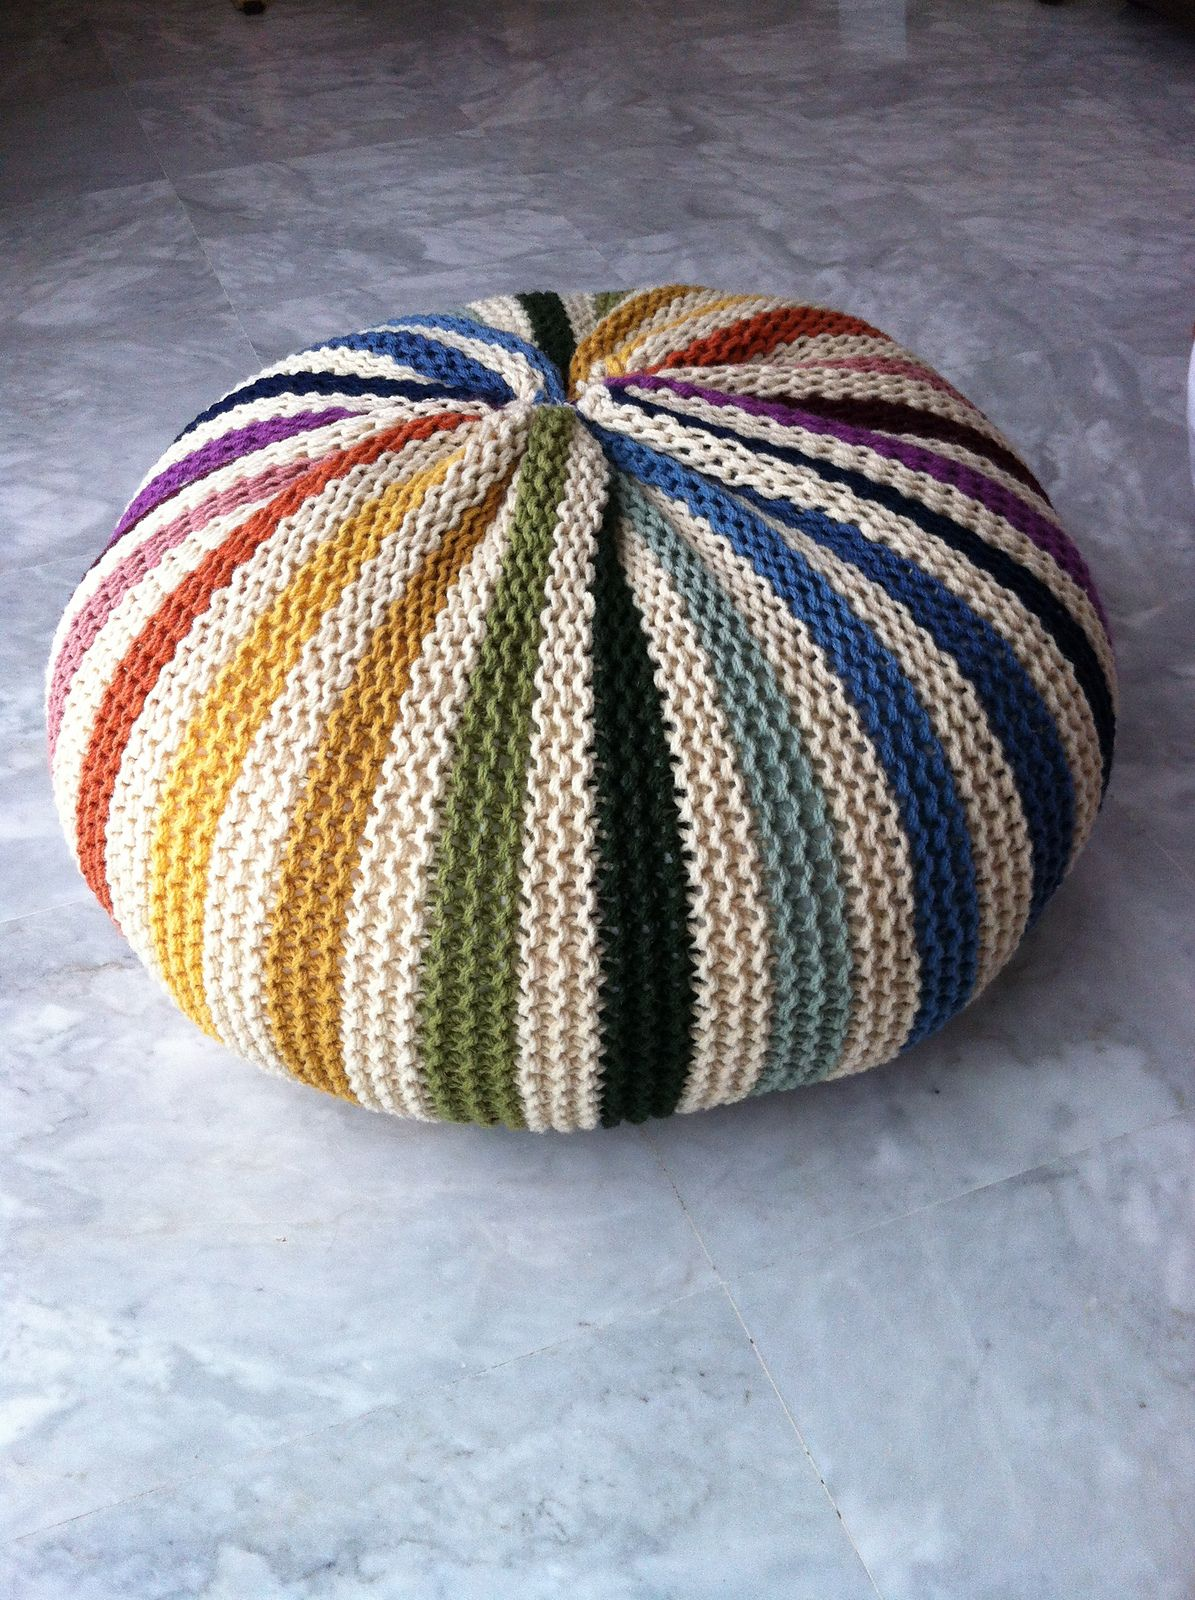 Ravelry: cgsalmones El Puff http://www.ravelry.com/patterns/library ...